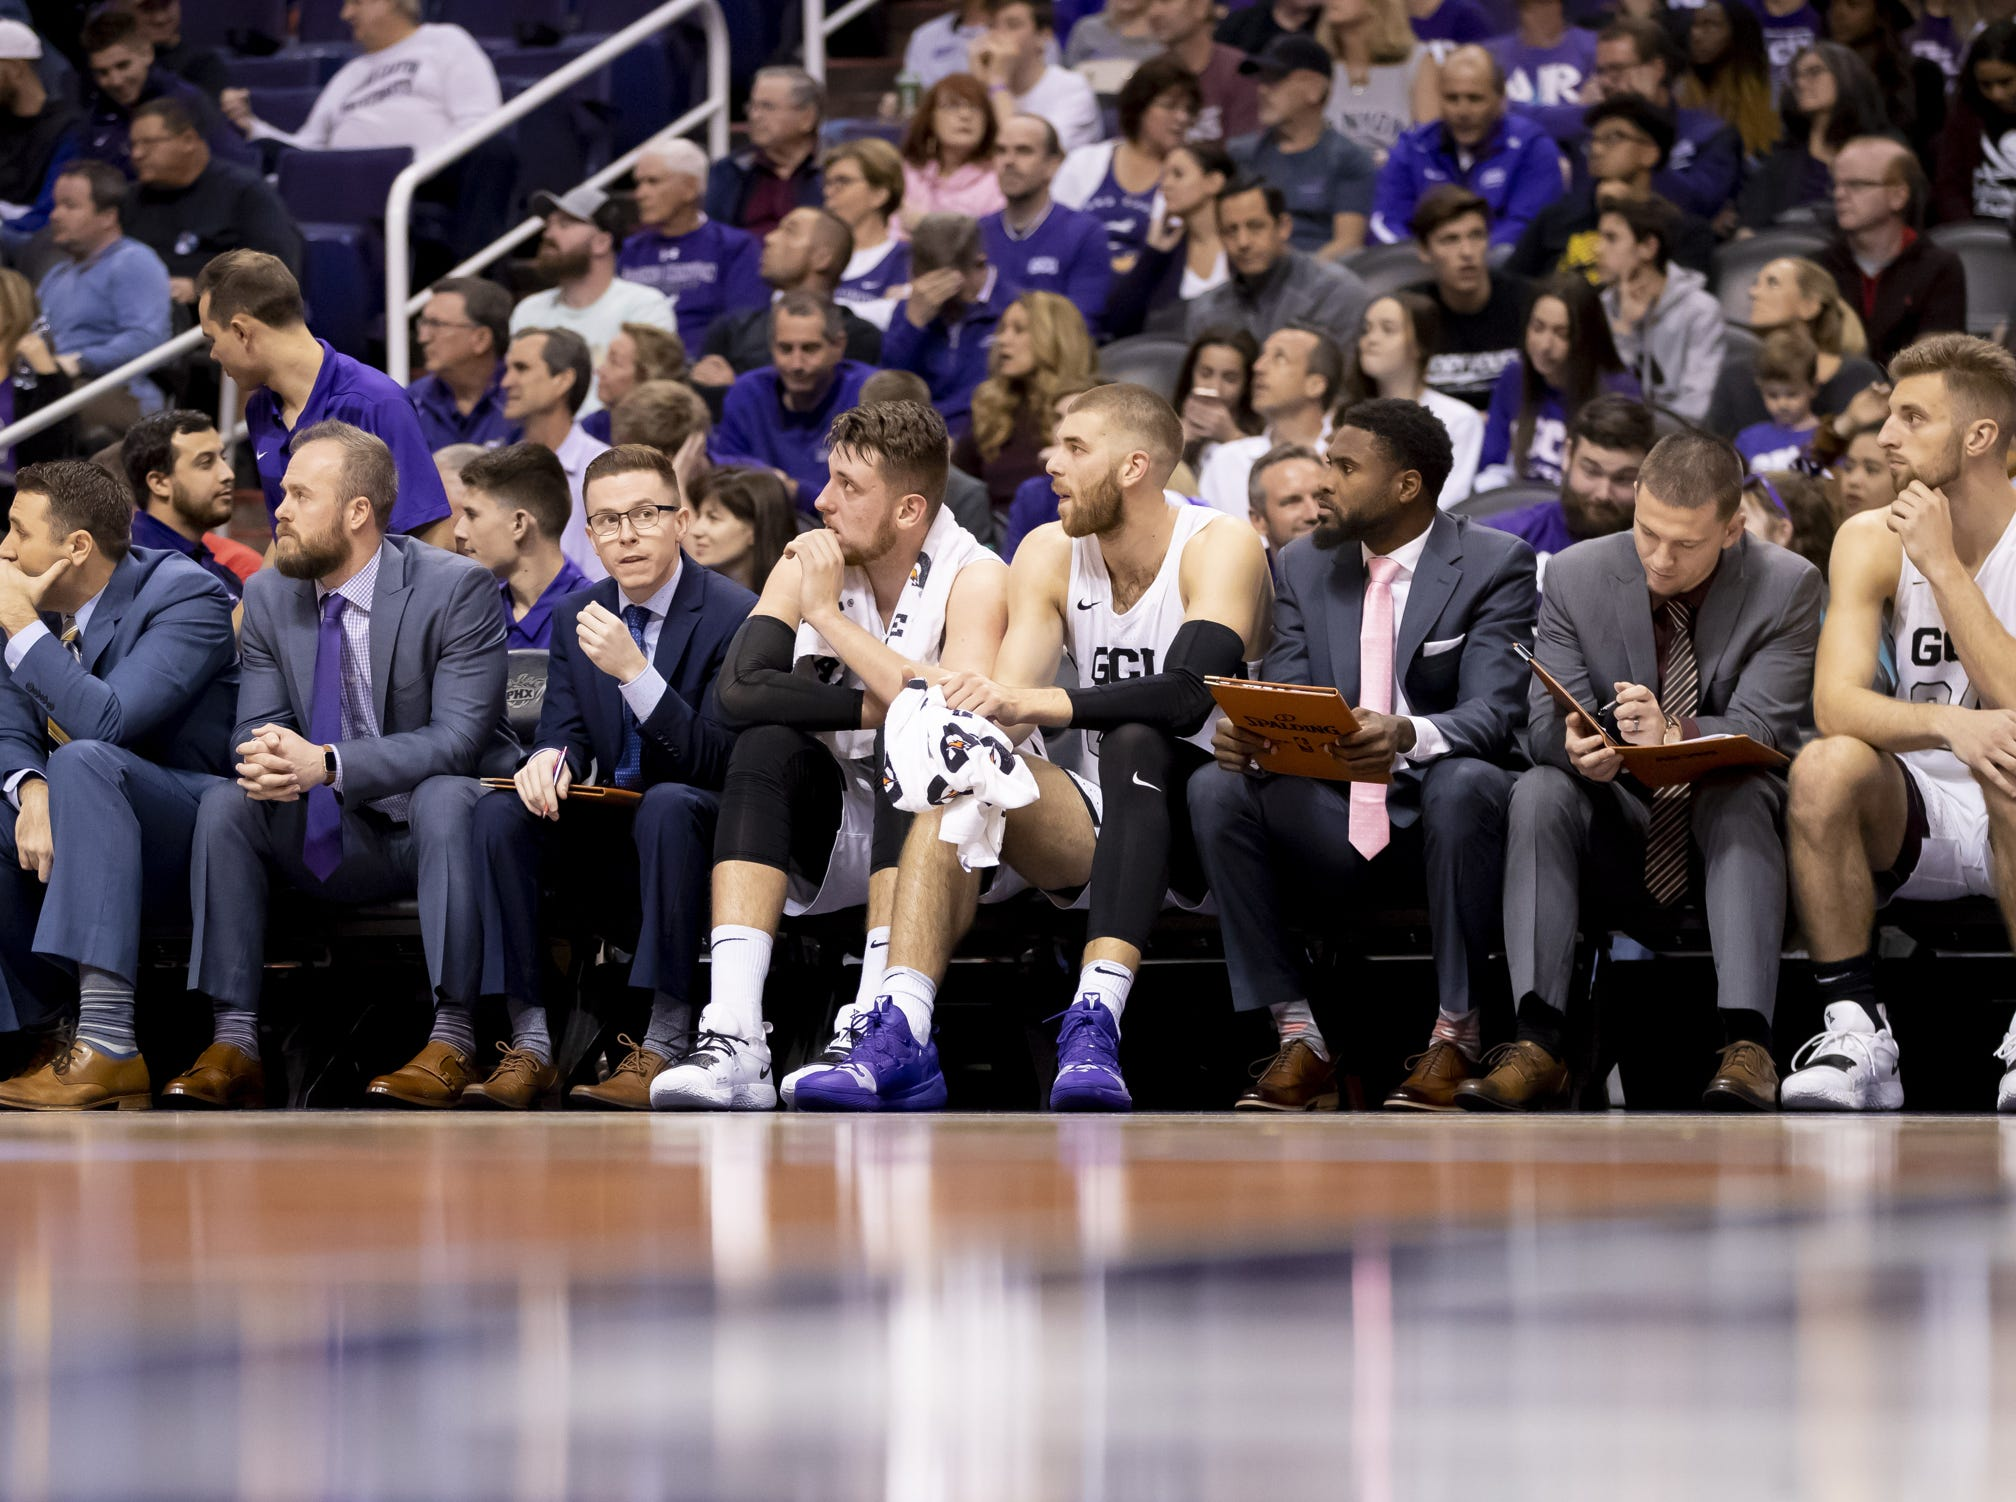 The Grand Canyon Antelopes bench during the 2018 Jerry Colangelo Classic against Nevada Wolf Pack at Talking Stick Resort Arena on Sunday, December 9, 2018 in Phoenix, Arizona.